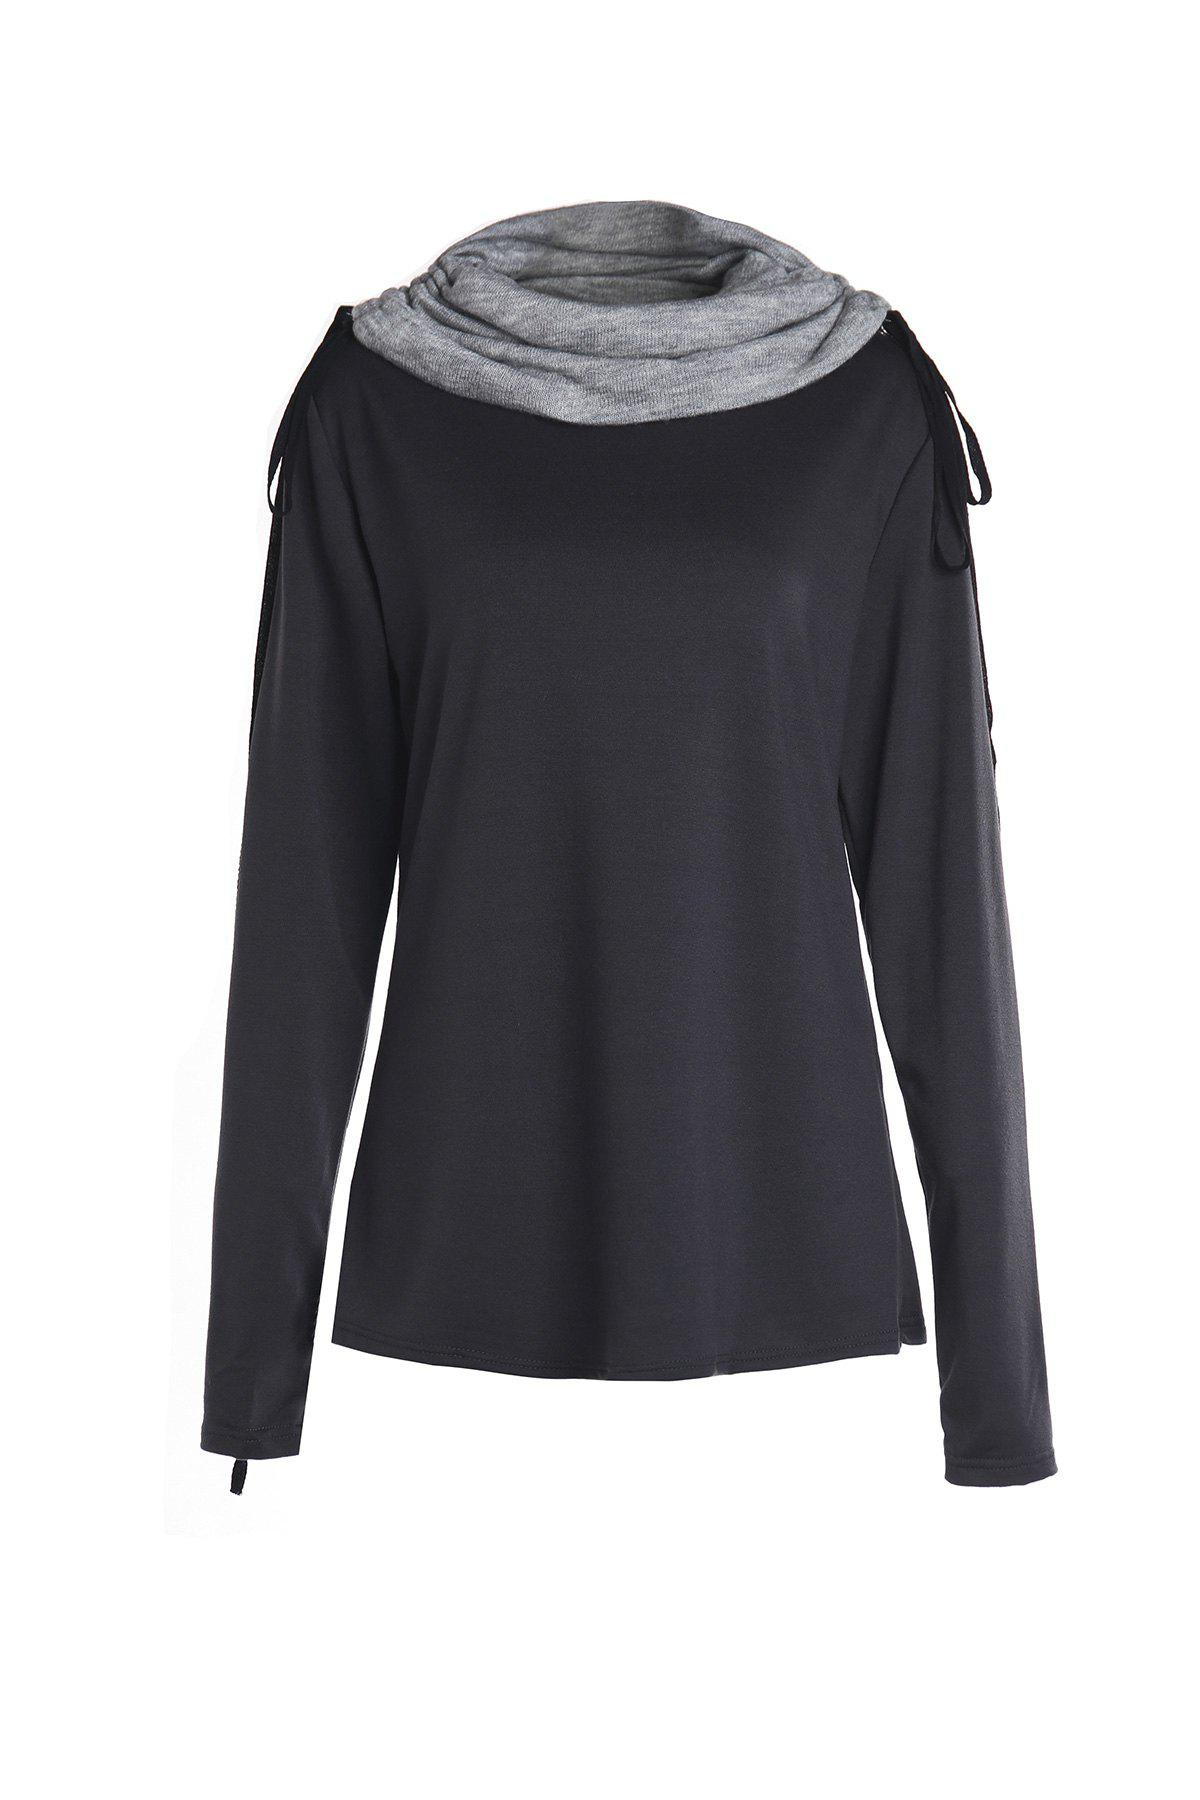 Chic Long Sleeve Turtle Neck Spliced Women's Sweatshirt